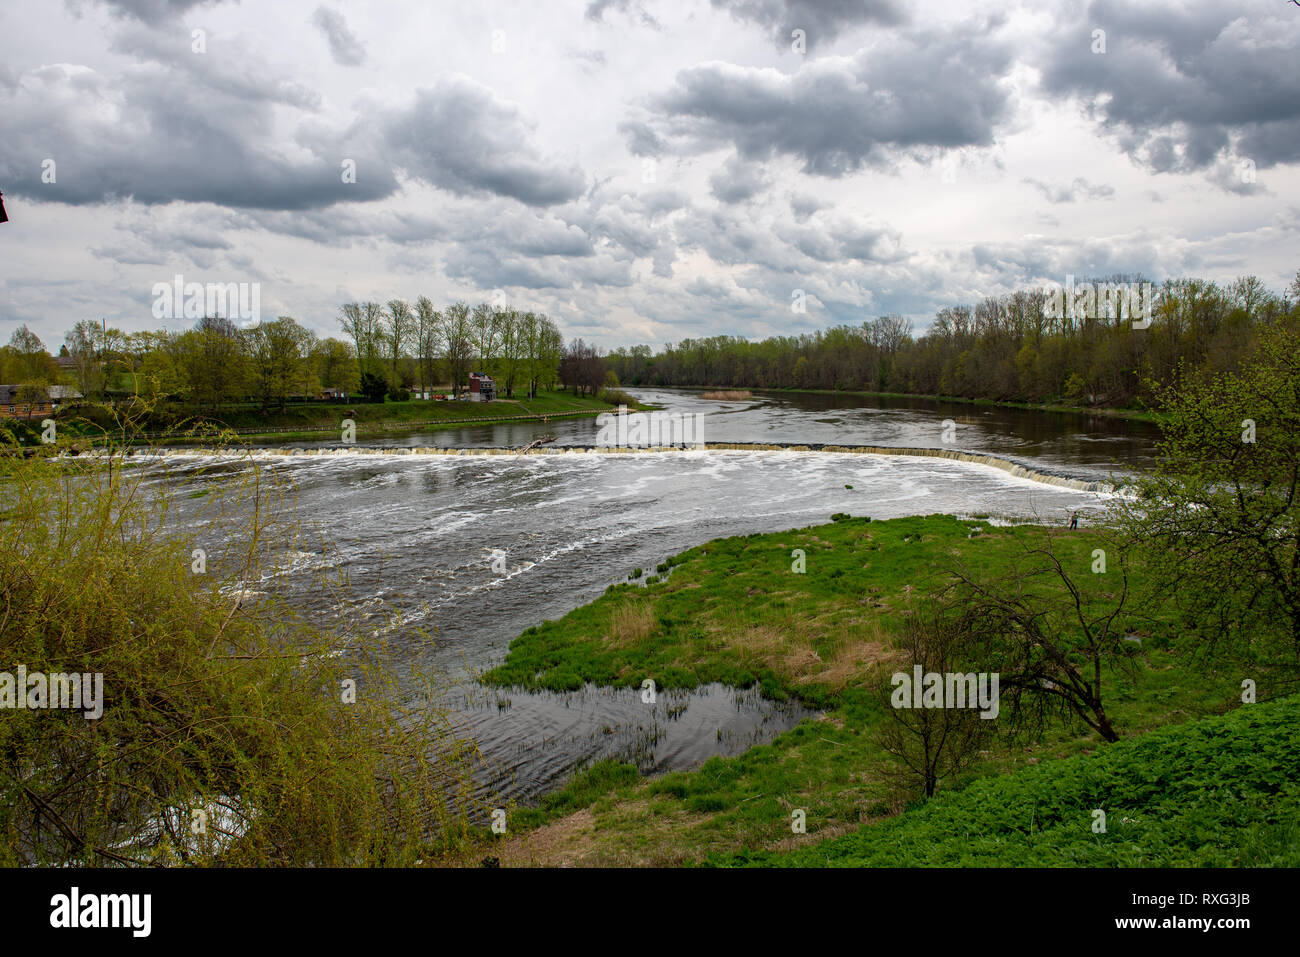 riverside landscape in latvia with dark water and dirty shore line. high water in spring with old wood and dirt - Stock Image